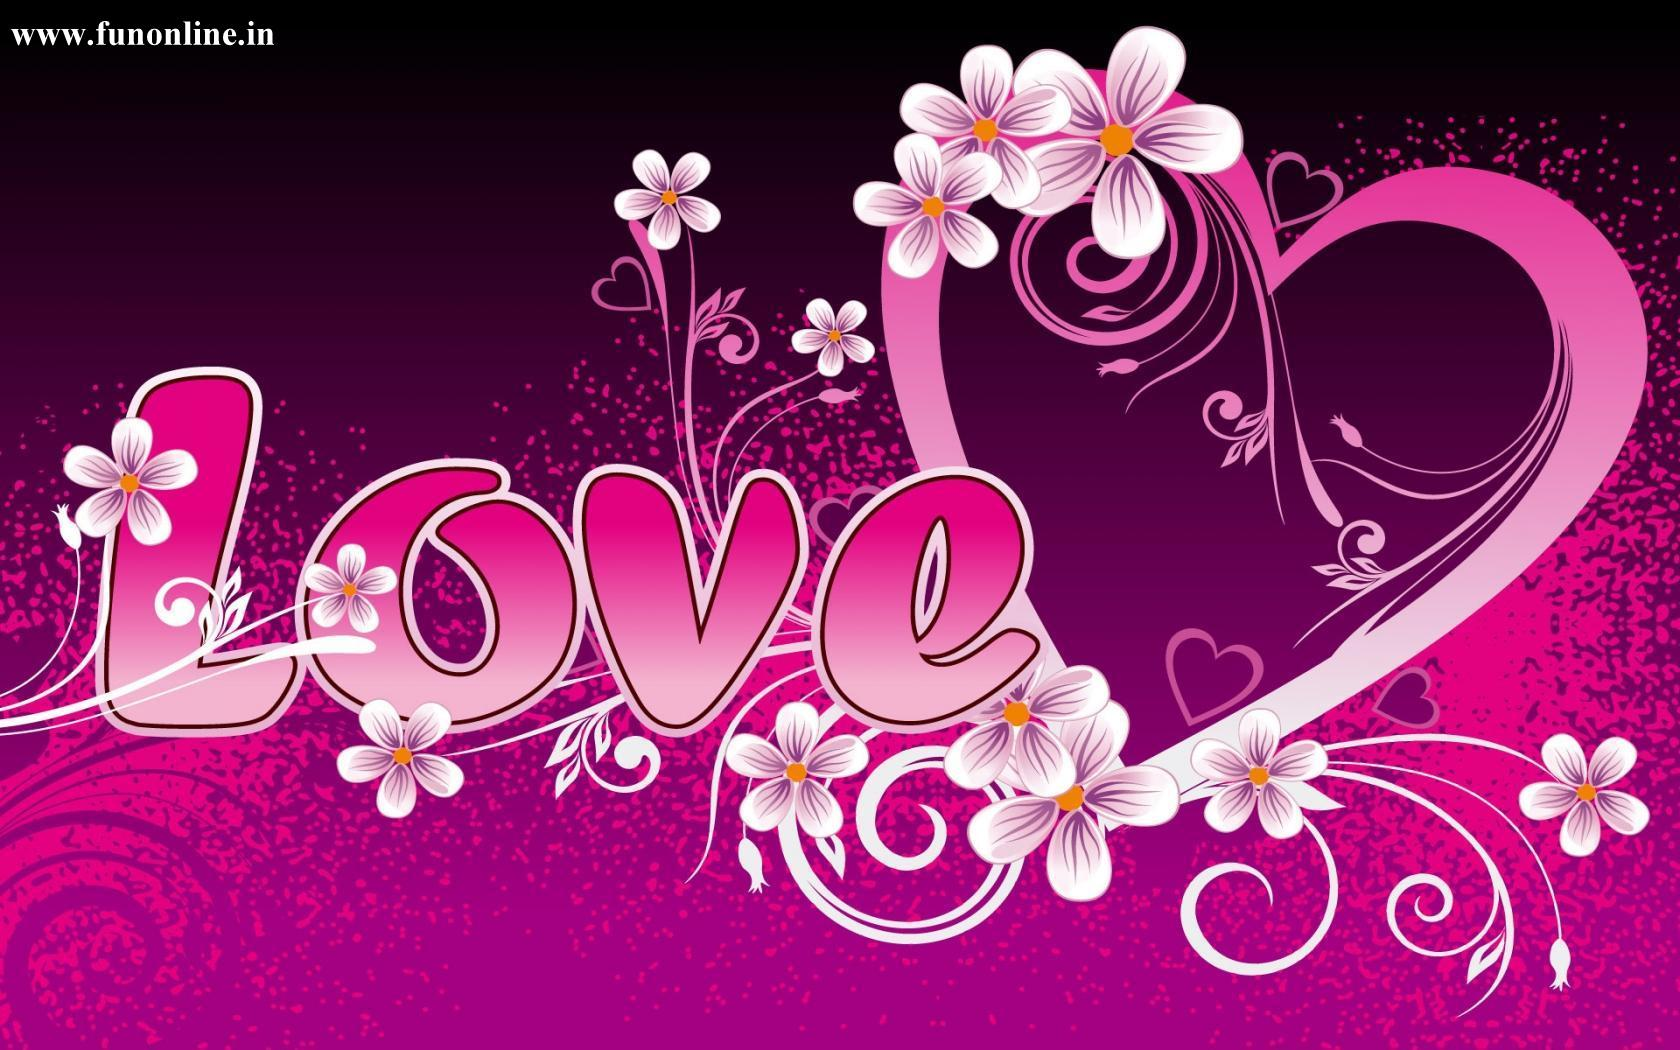 Love Heart Wallpapers Loving Hearts Cute Love Wallpapers Love Poem 1680x1050